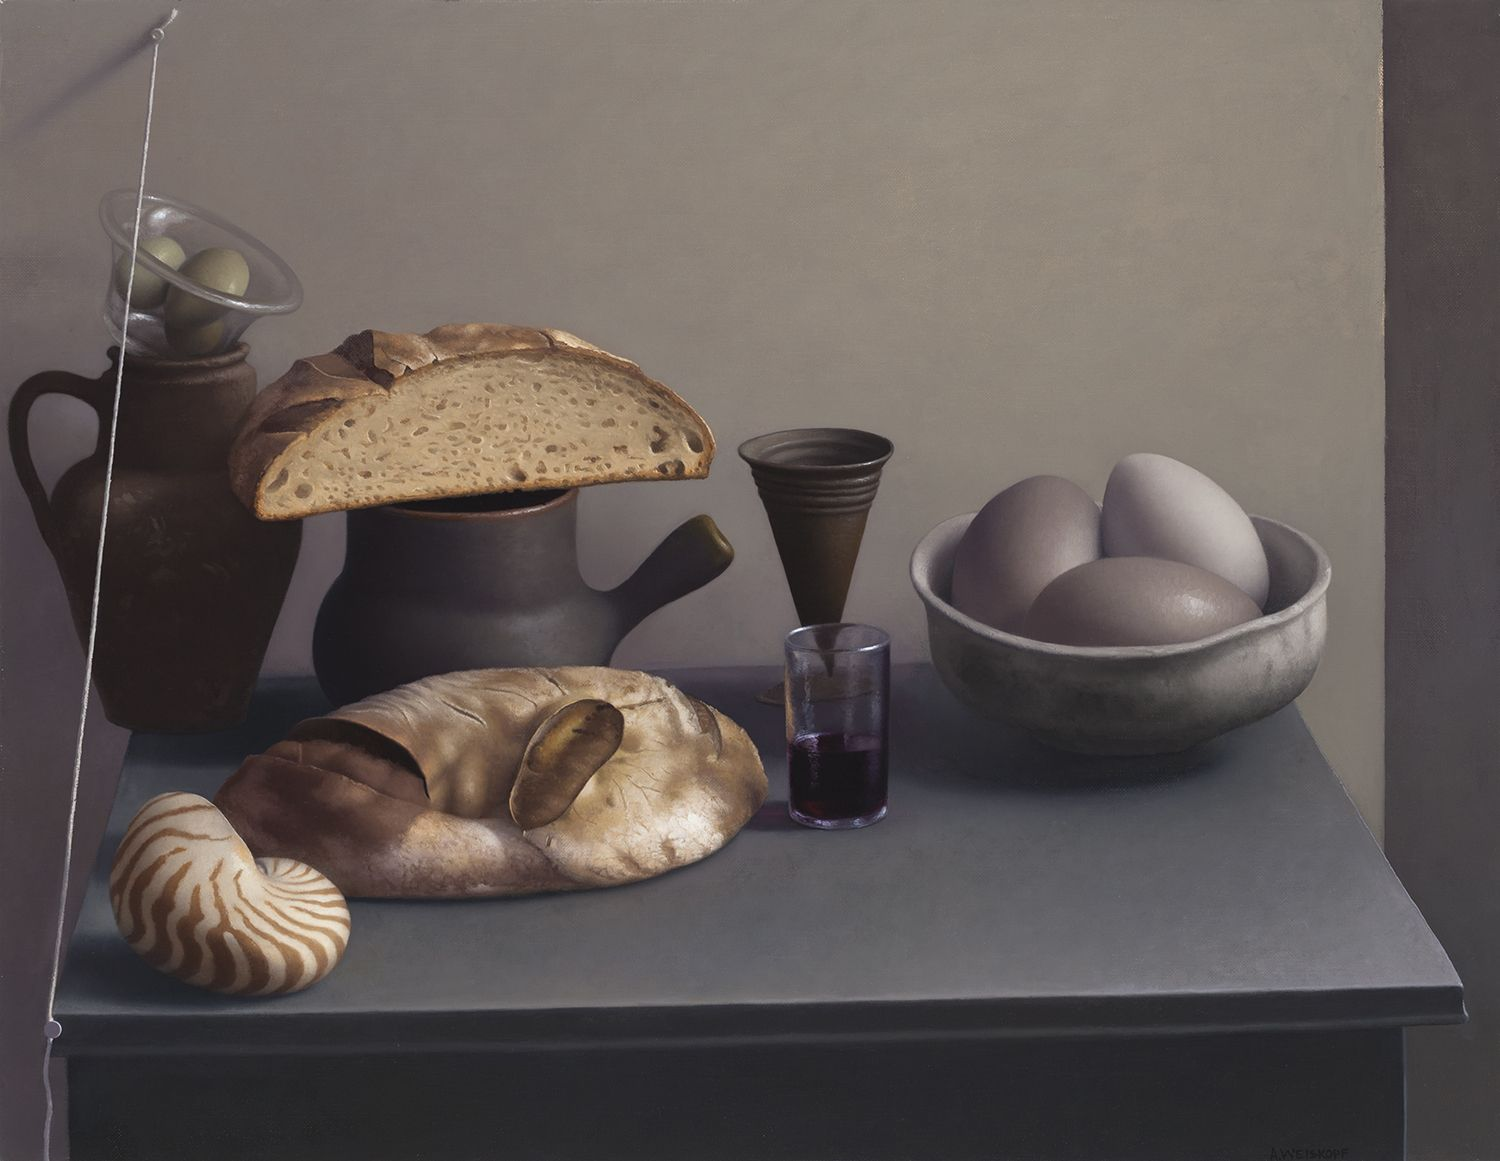 Amy Weiskopf  (b.1957), Still Life with Bread, Shell and Eggs, 2016